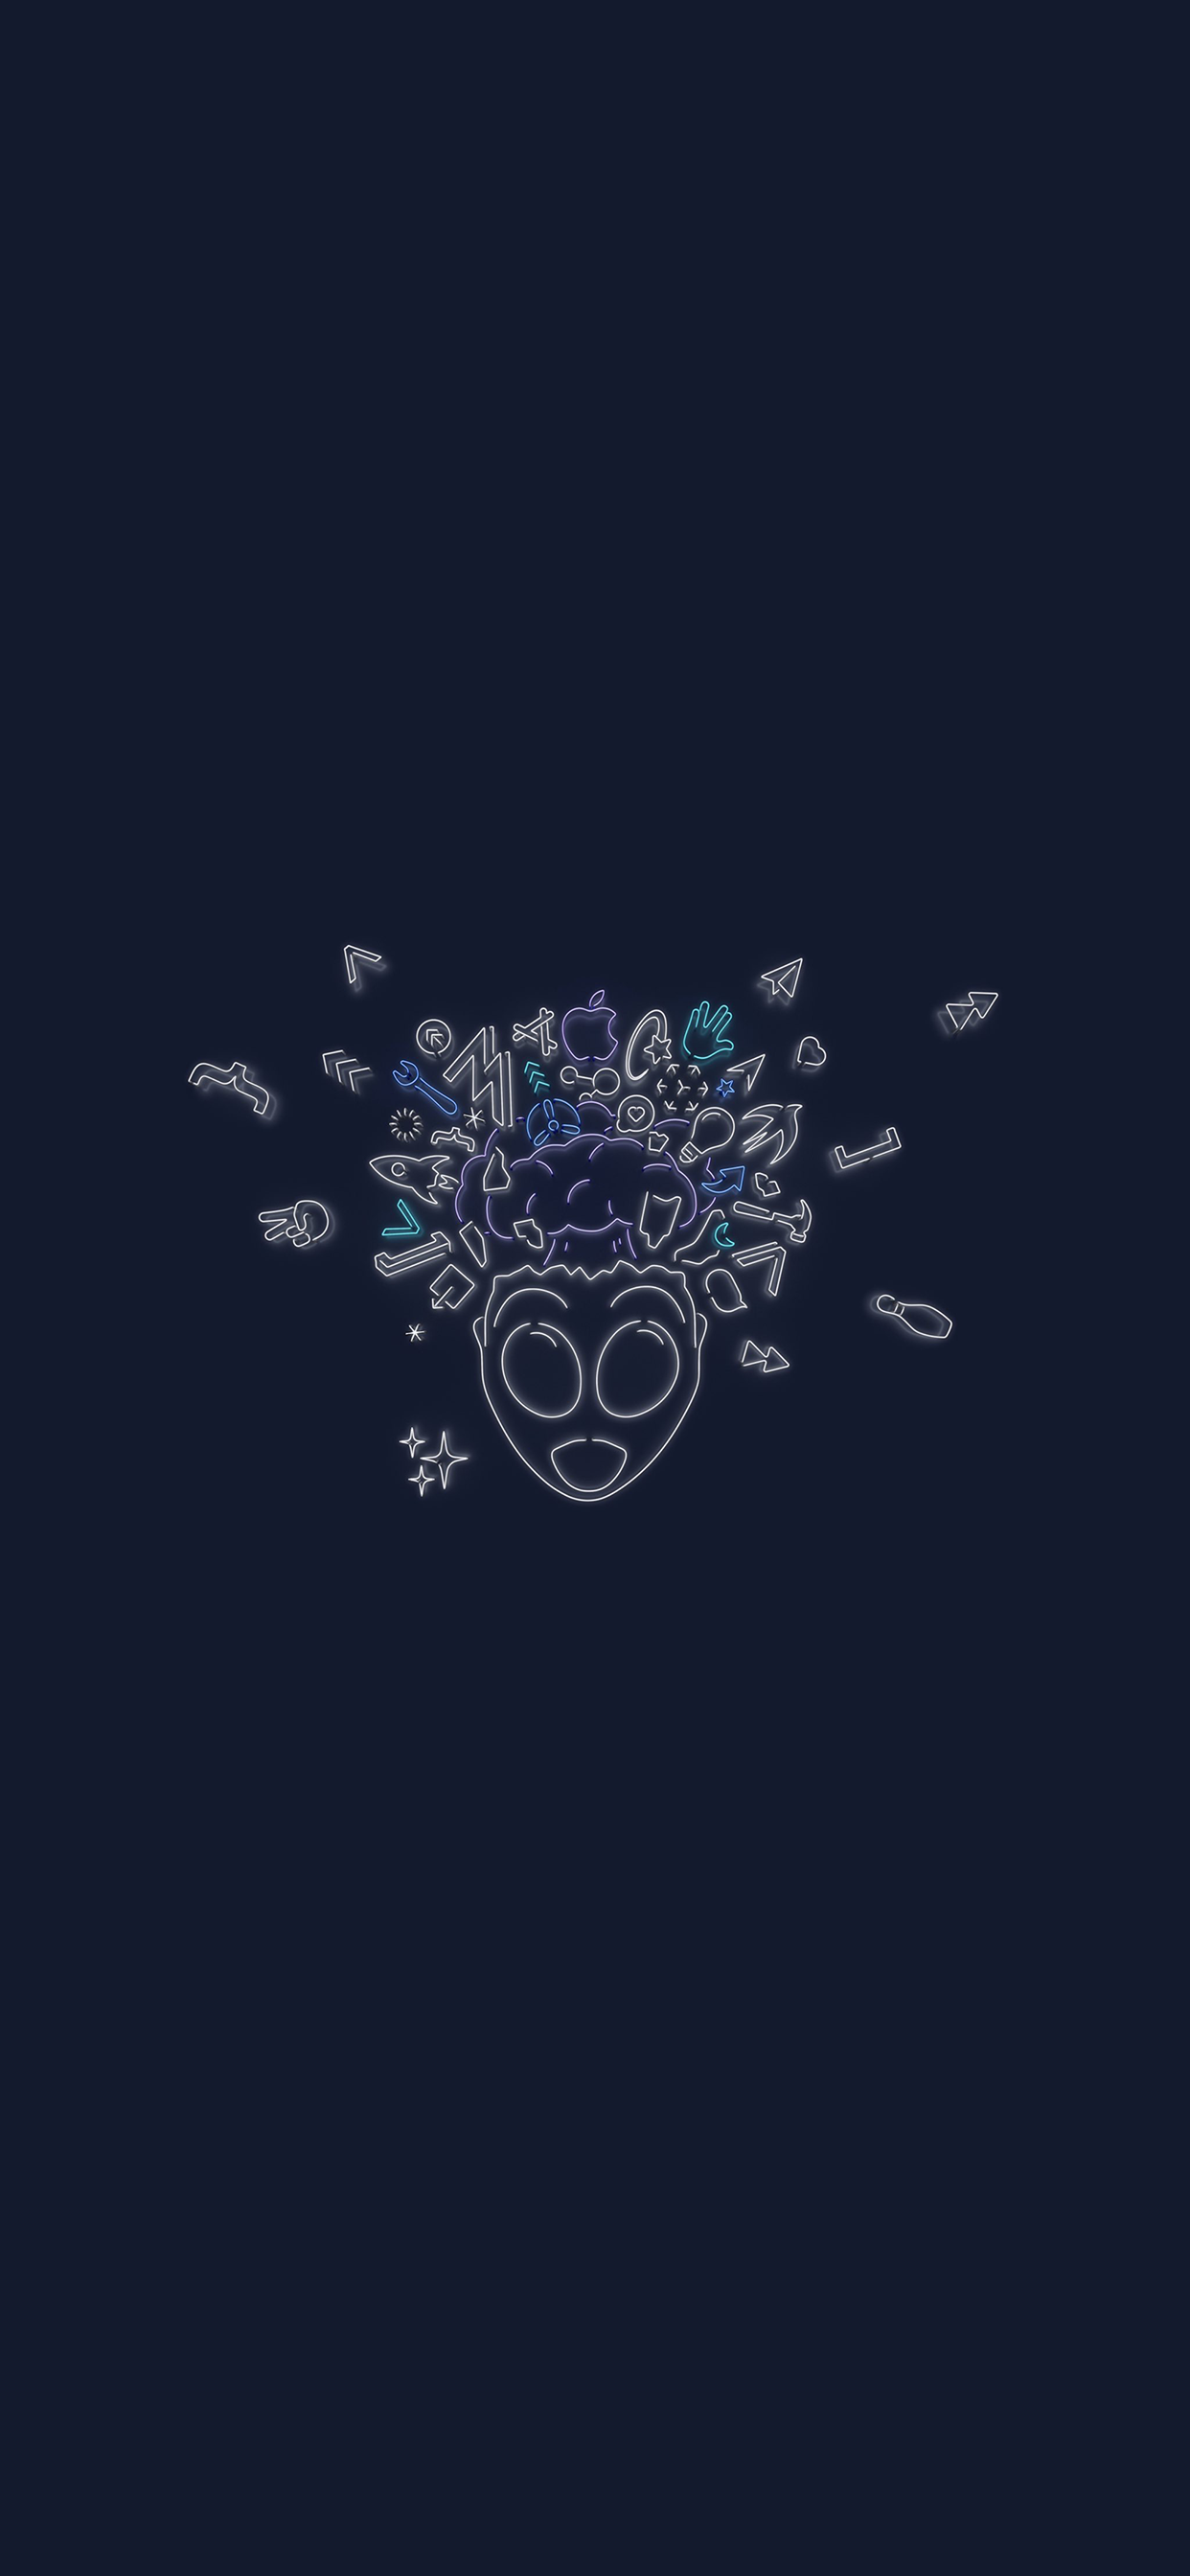 iPhone wallpaper Apple WWDC 2019 alien Apple WWDC 2019